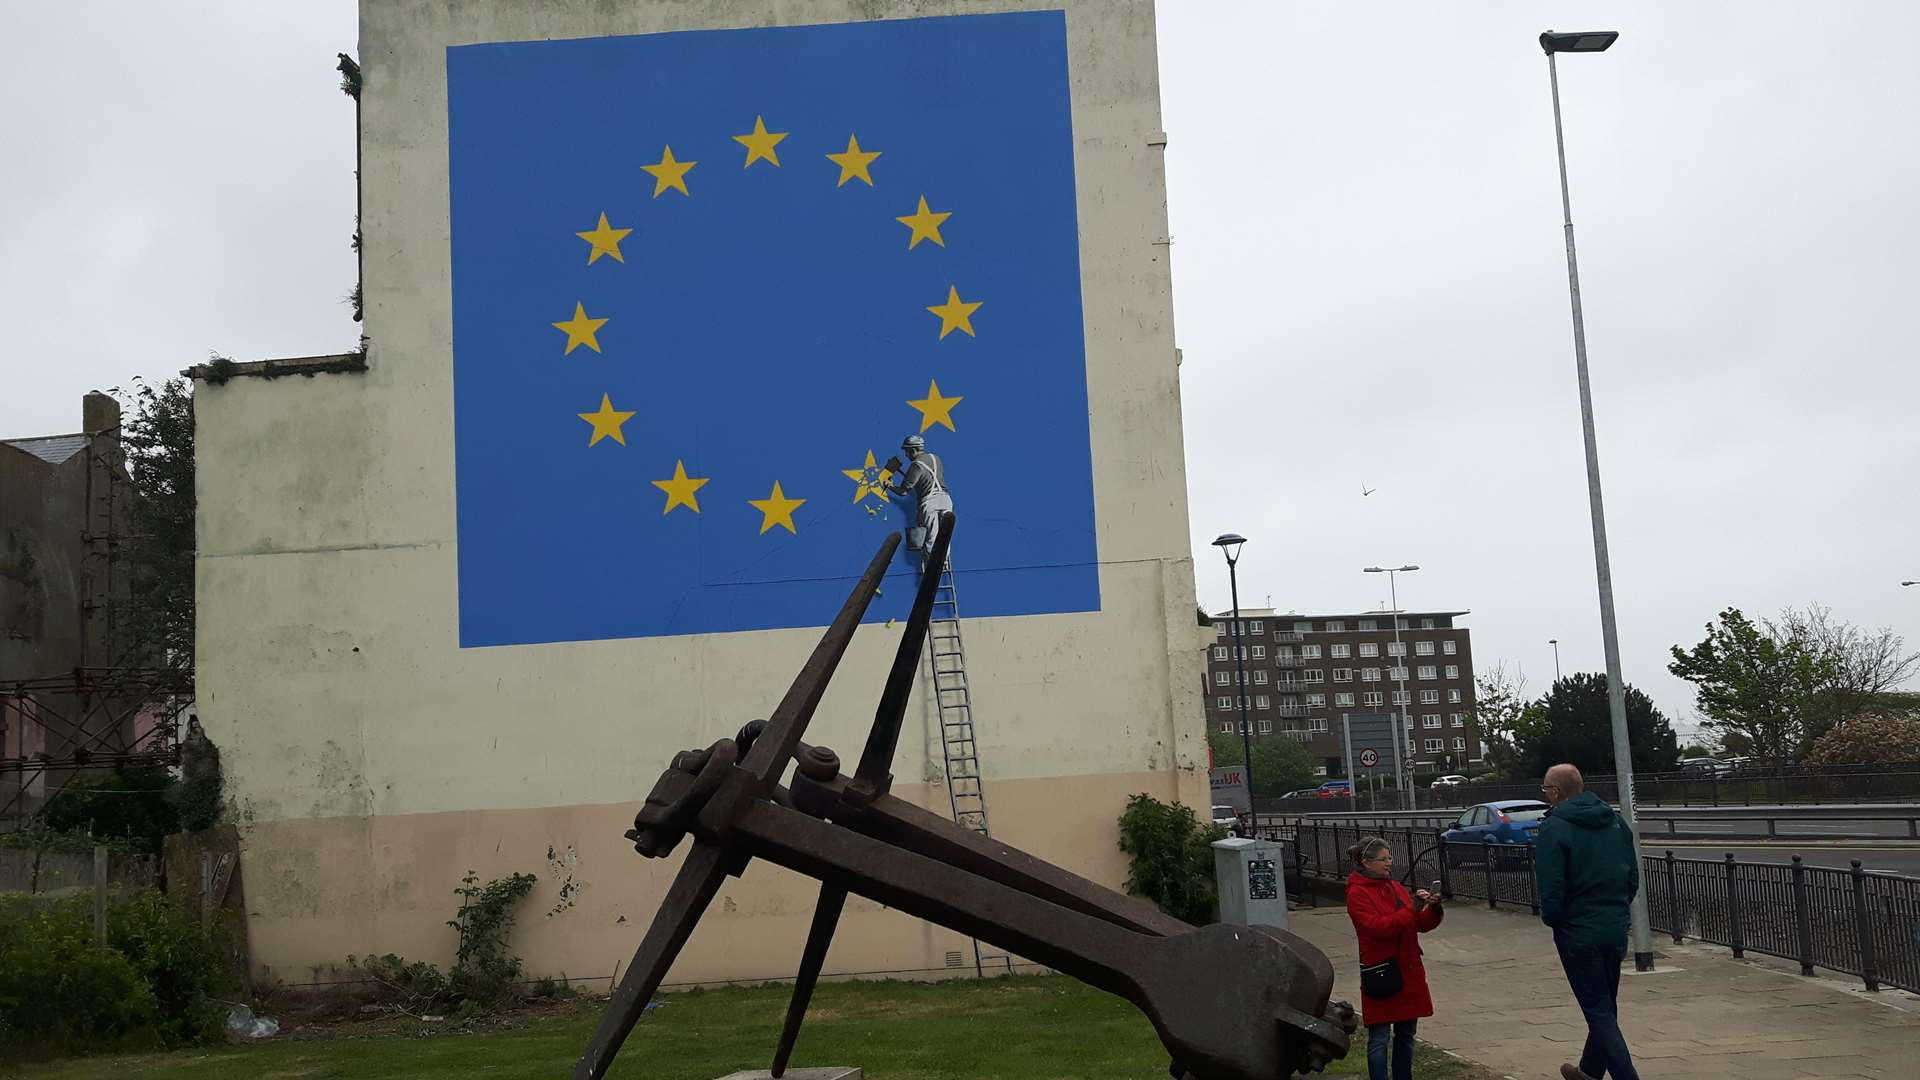 Elusive artist Banksy crept into Dover and painted a Brexit themed mural last Sunday